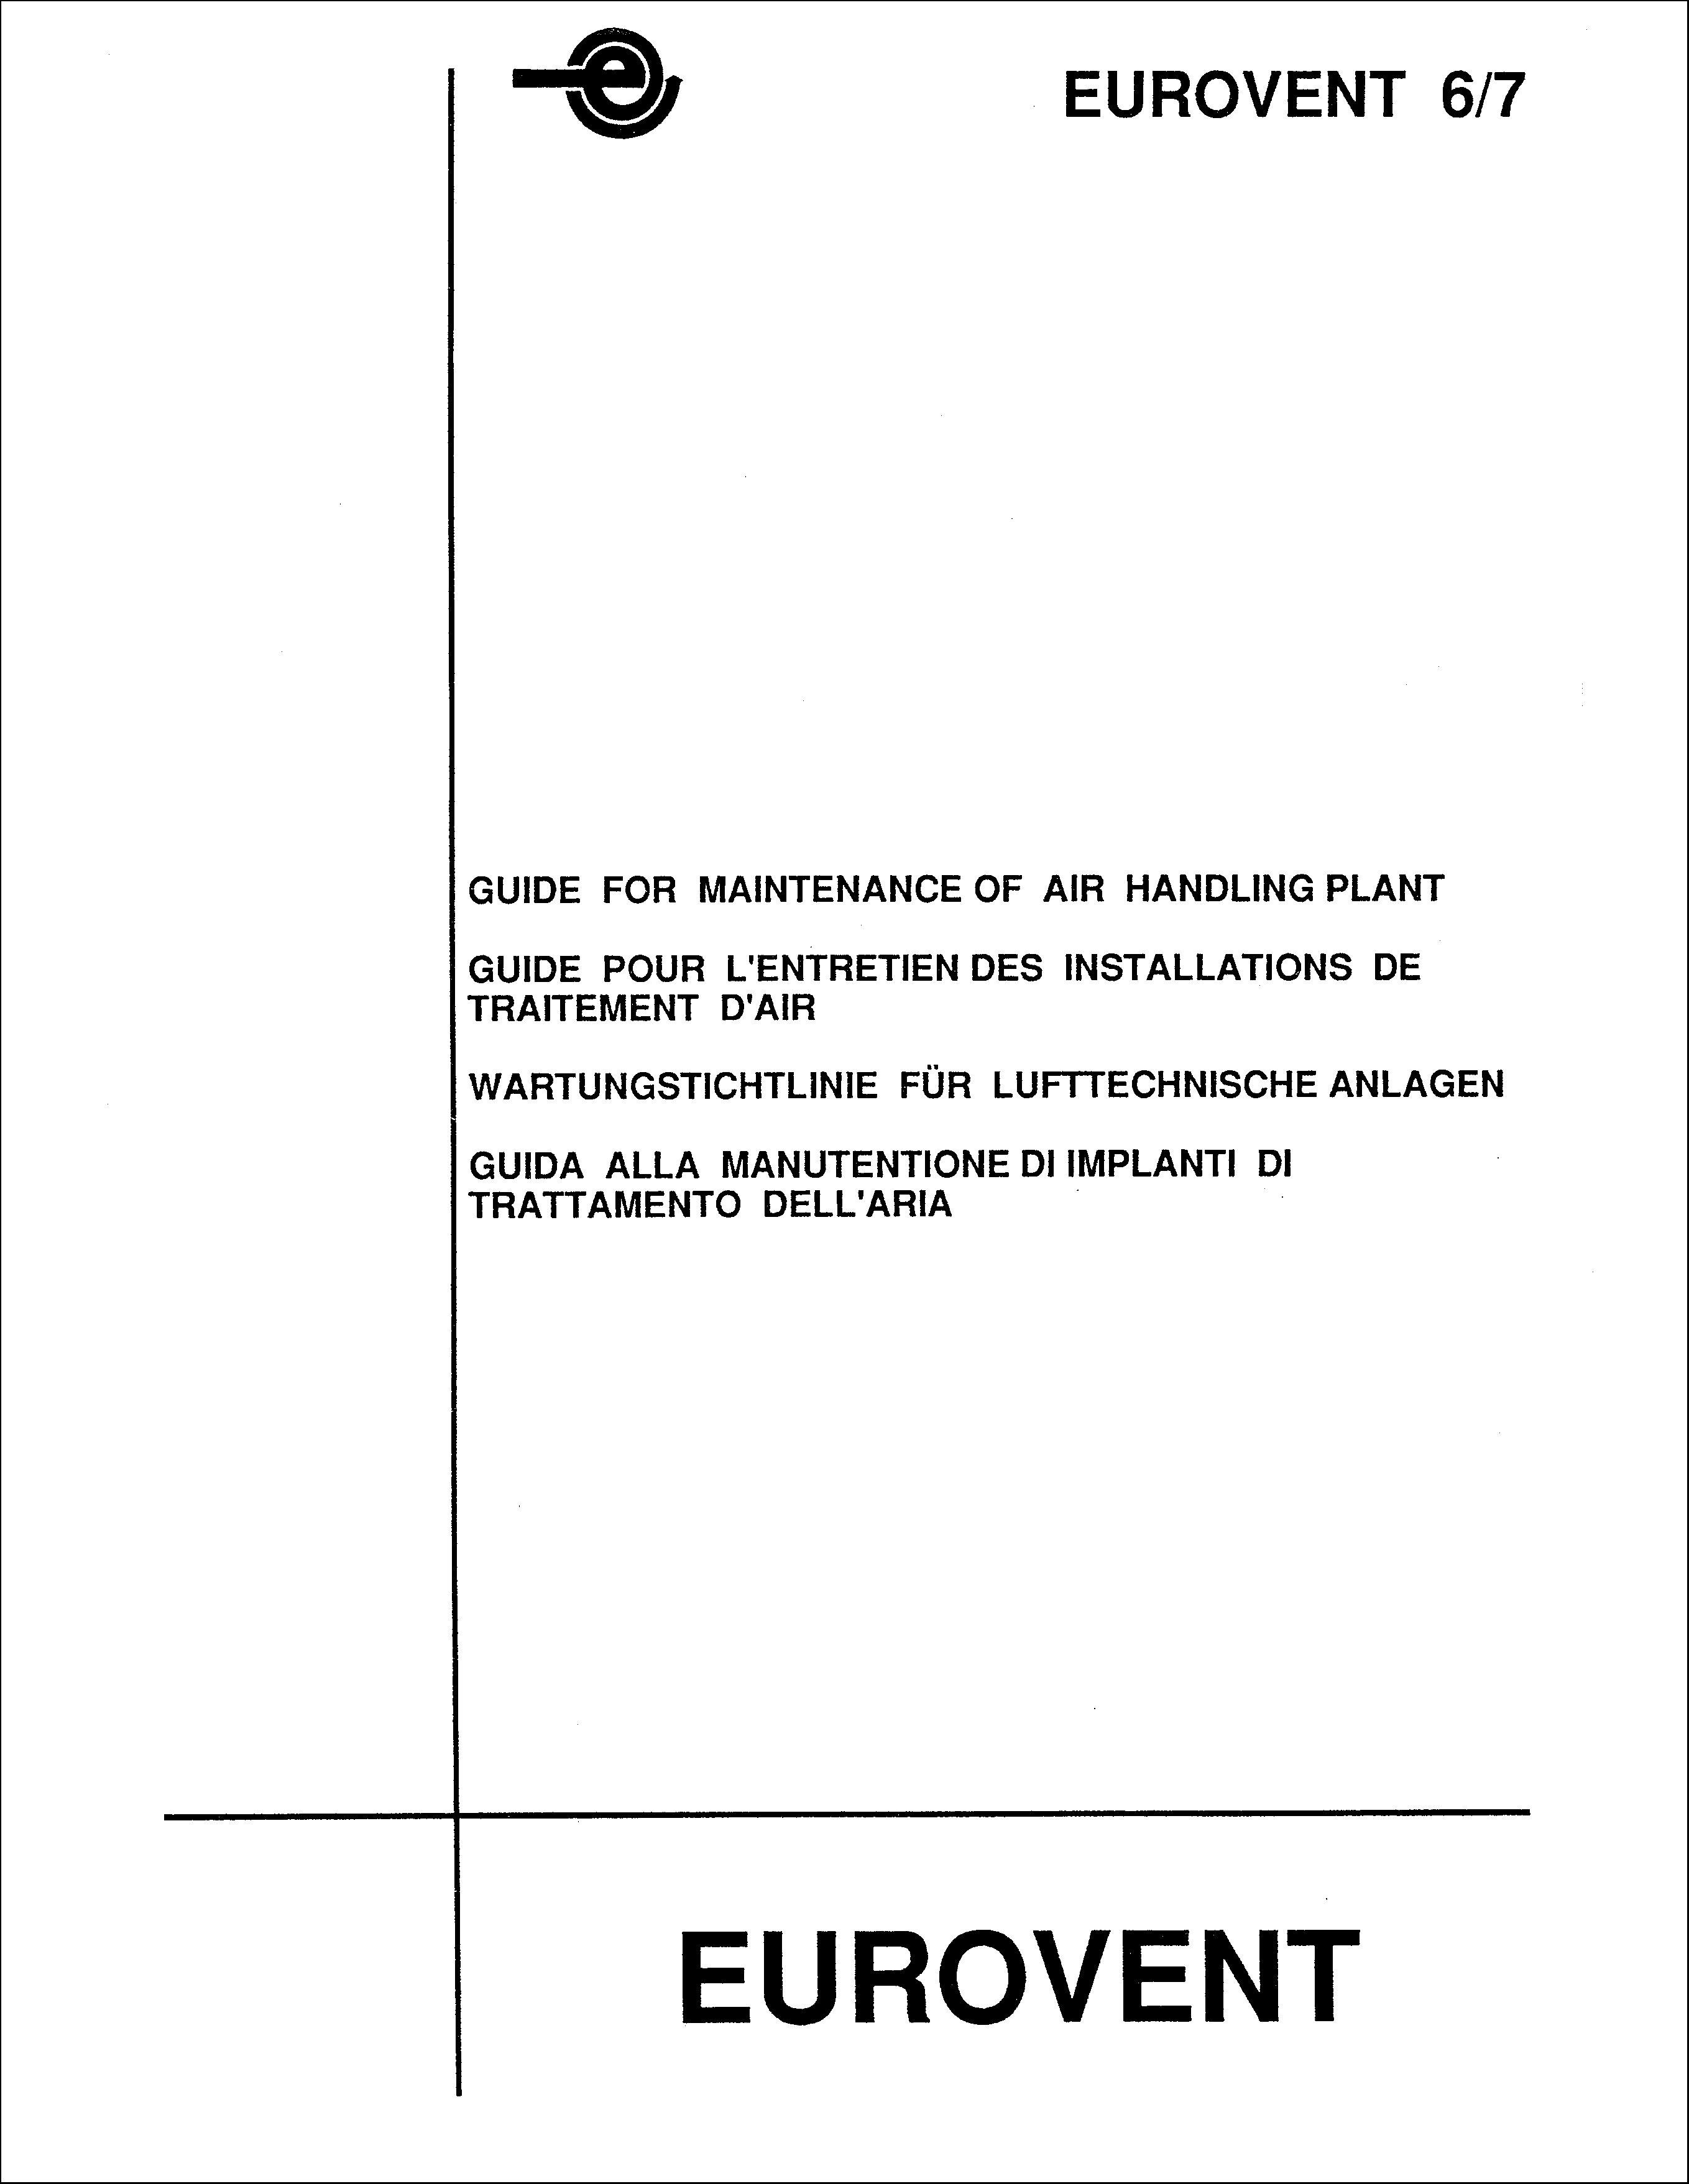 1986 - Guide for maintenance of air handling plant